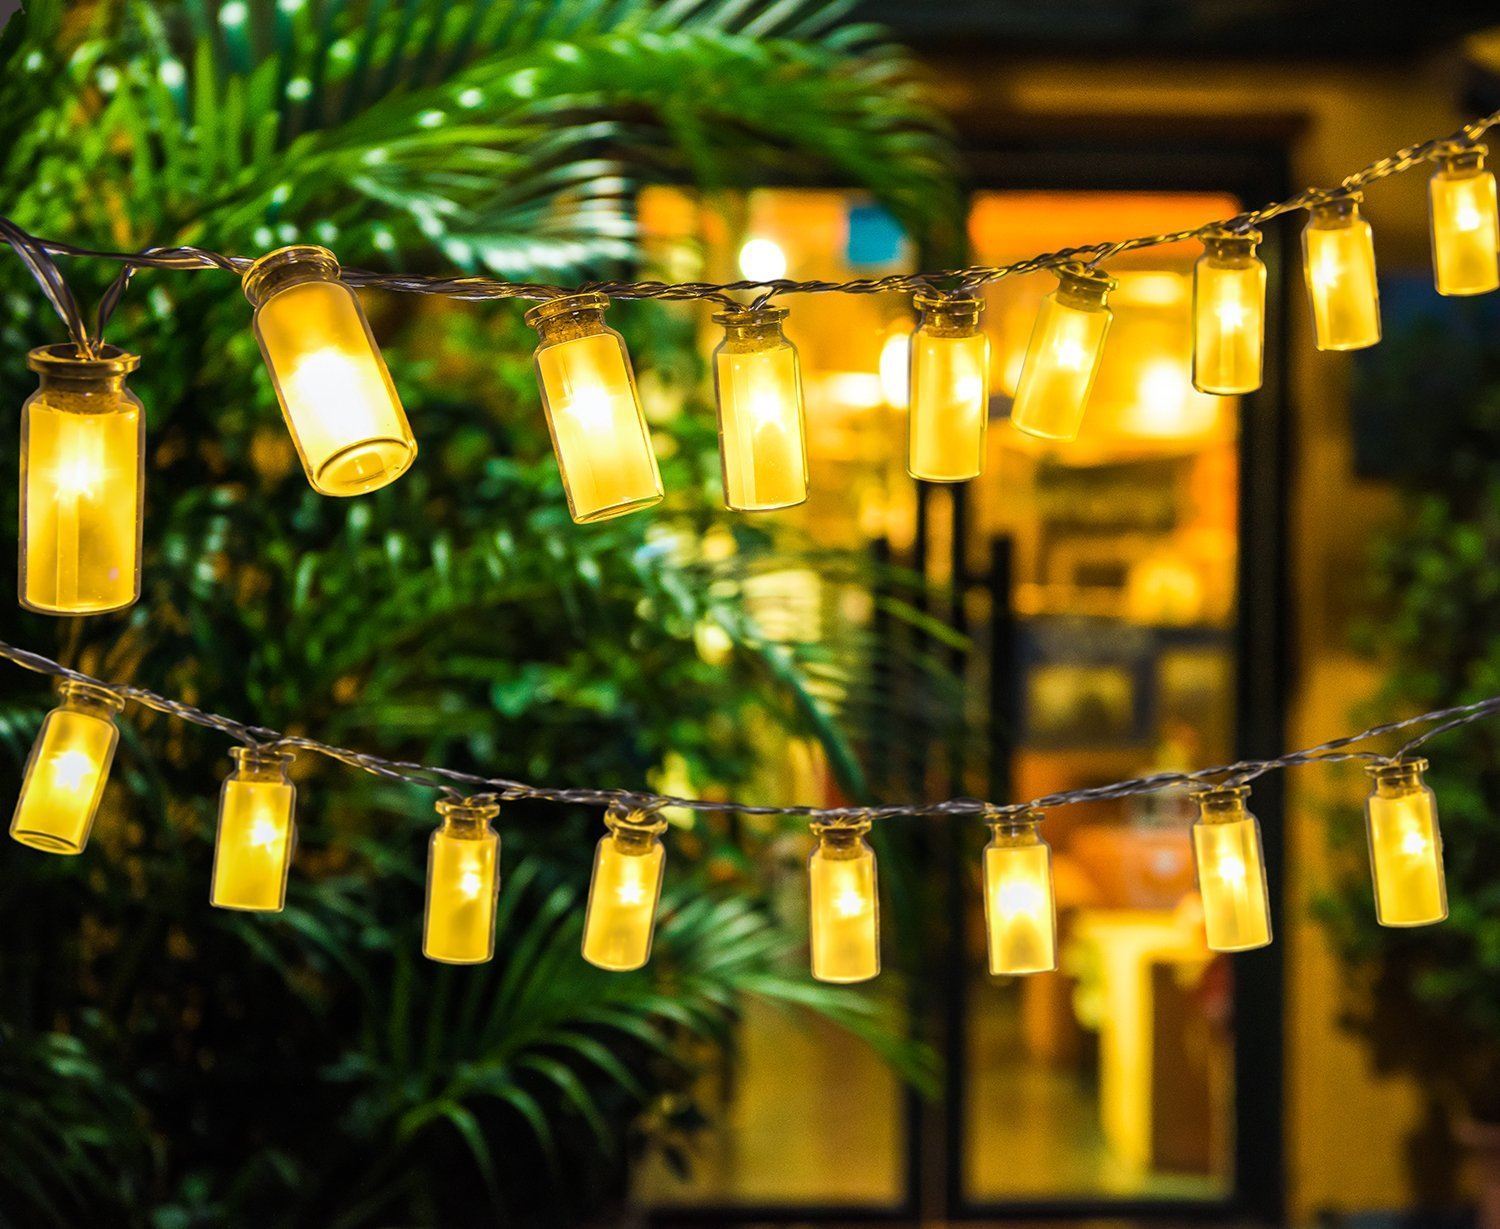 35 striking outdoor lighting ideas and designs